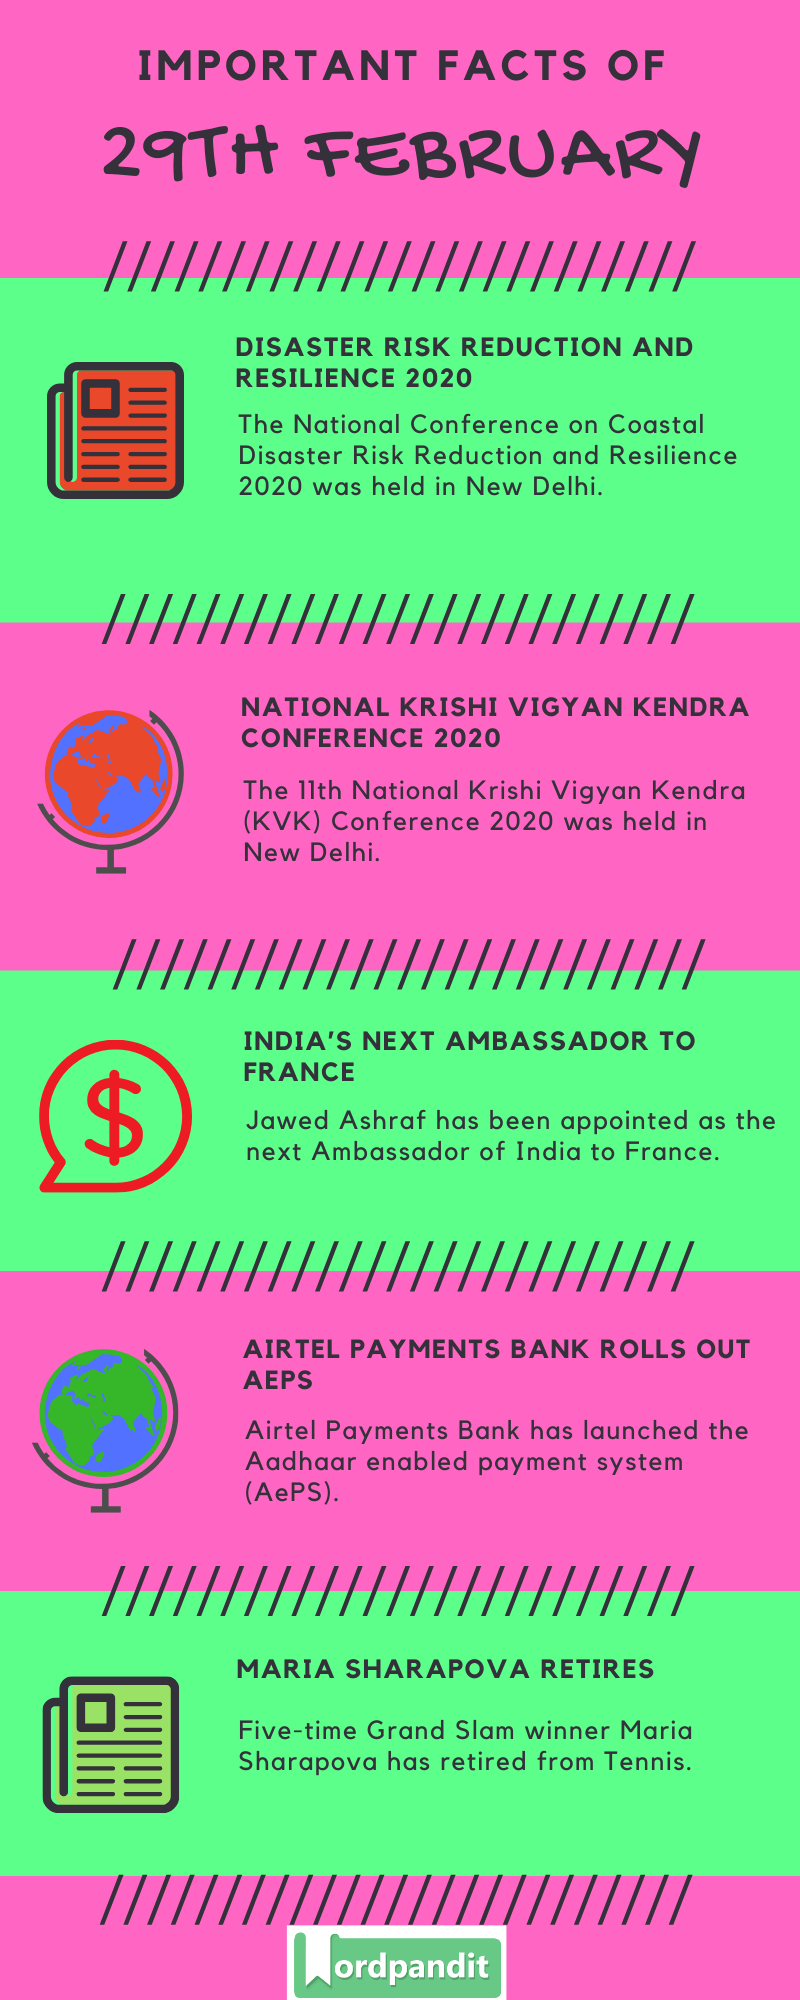 Daily Current Affairs 29 February 2020 Current Affairs Quiz 29 February 2020 Current Affairs Infographic